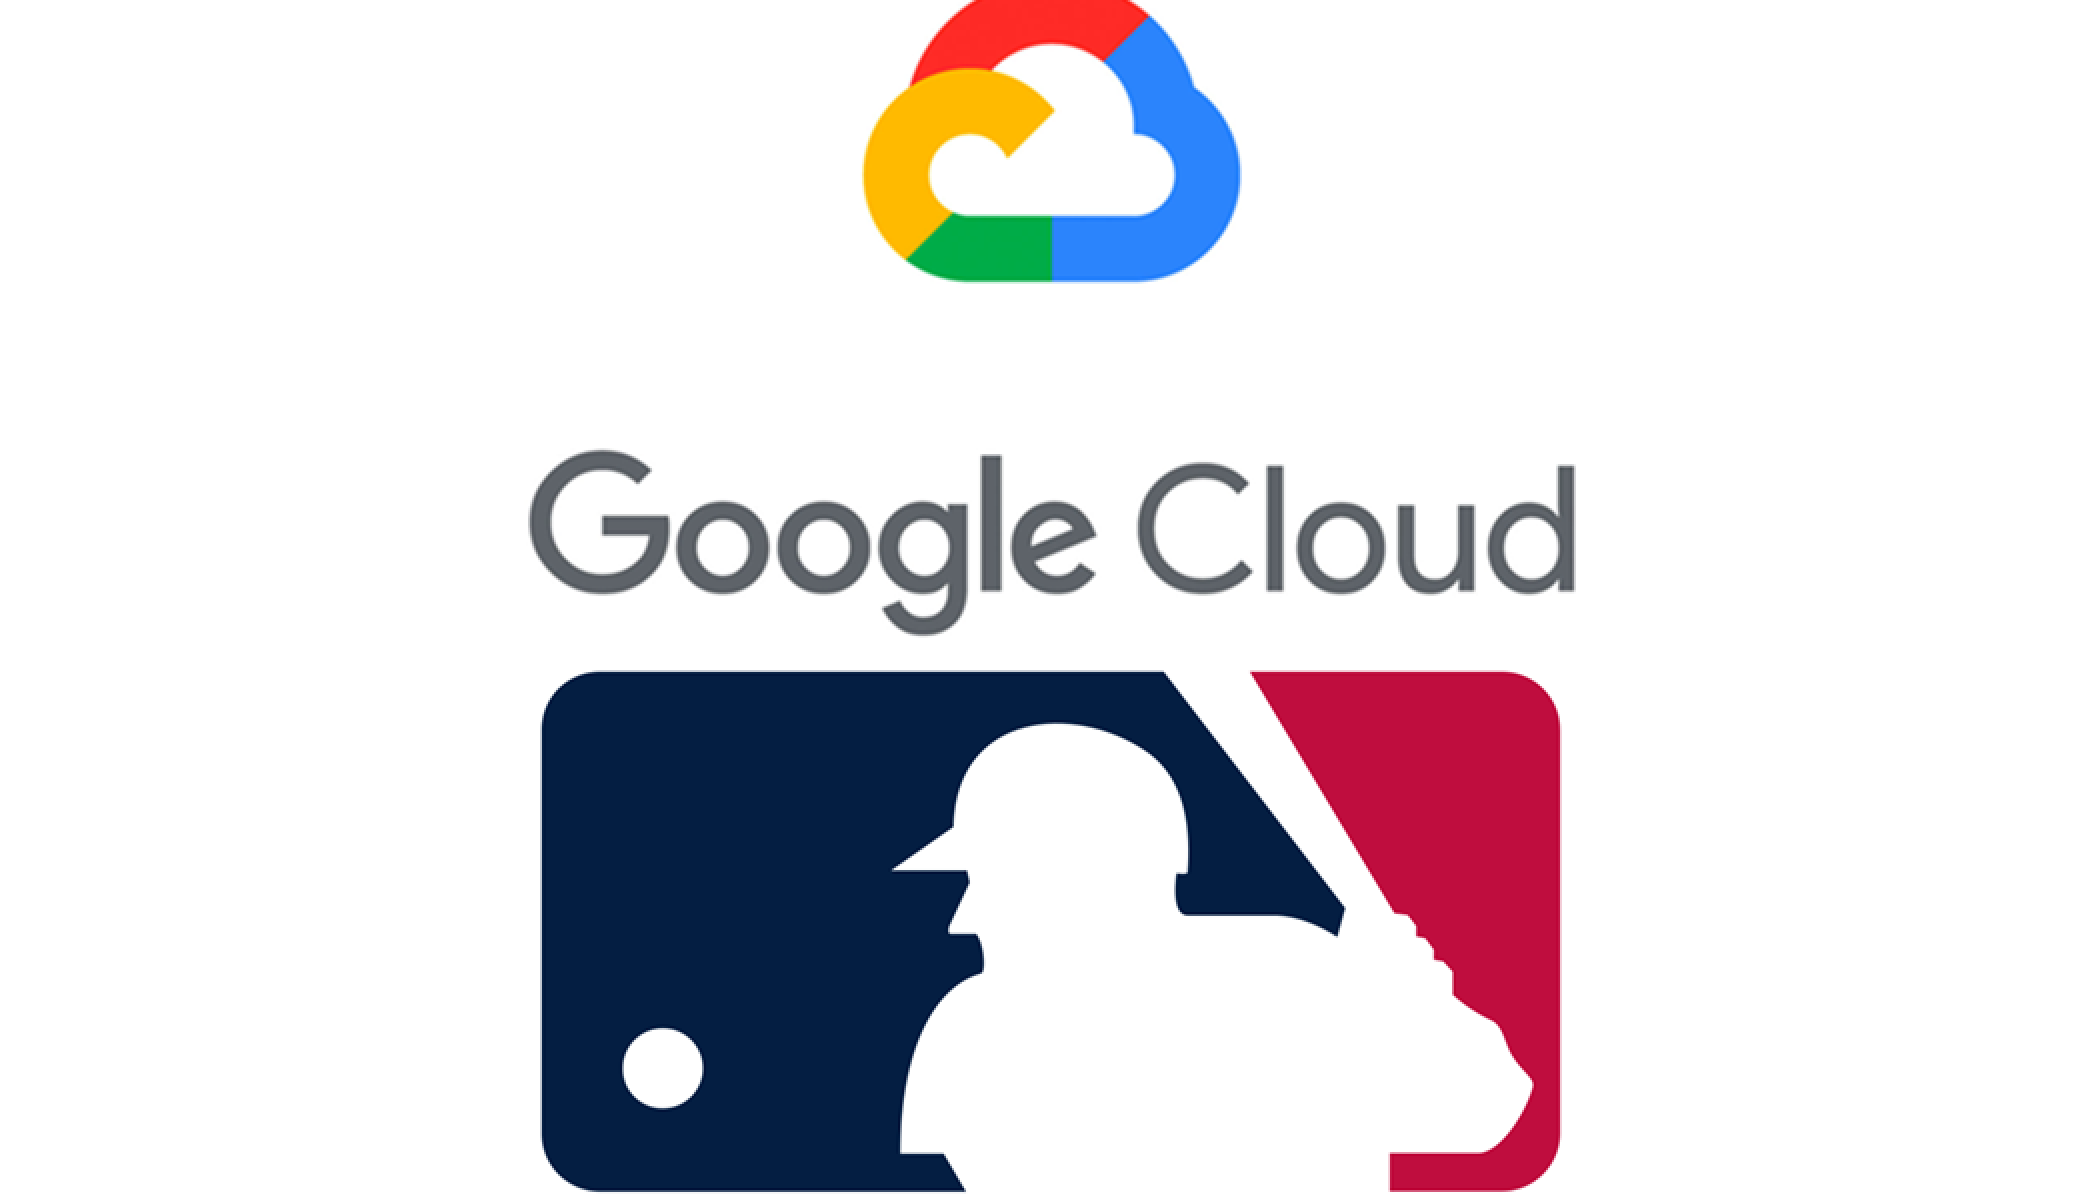 liga-americana-de-baseball-anuncia-google-cloud-como-parceiro-de-transformacao-digital